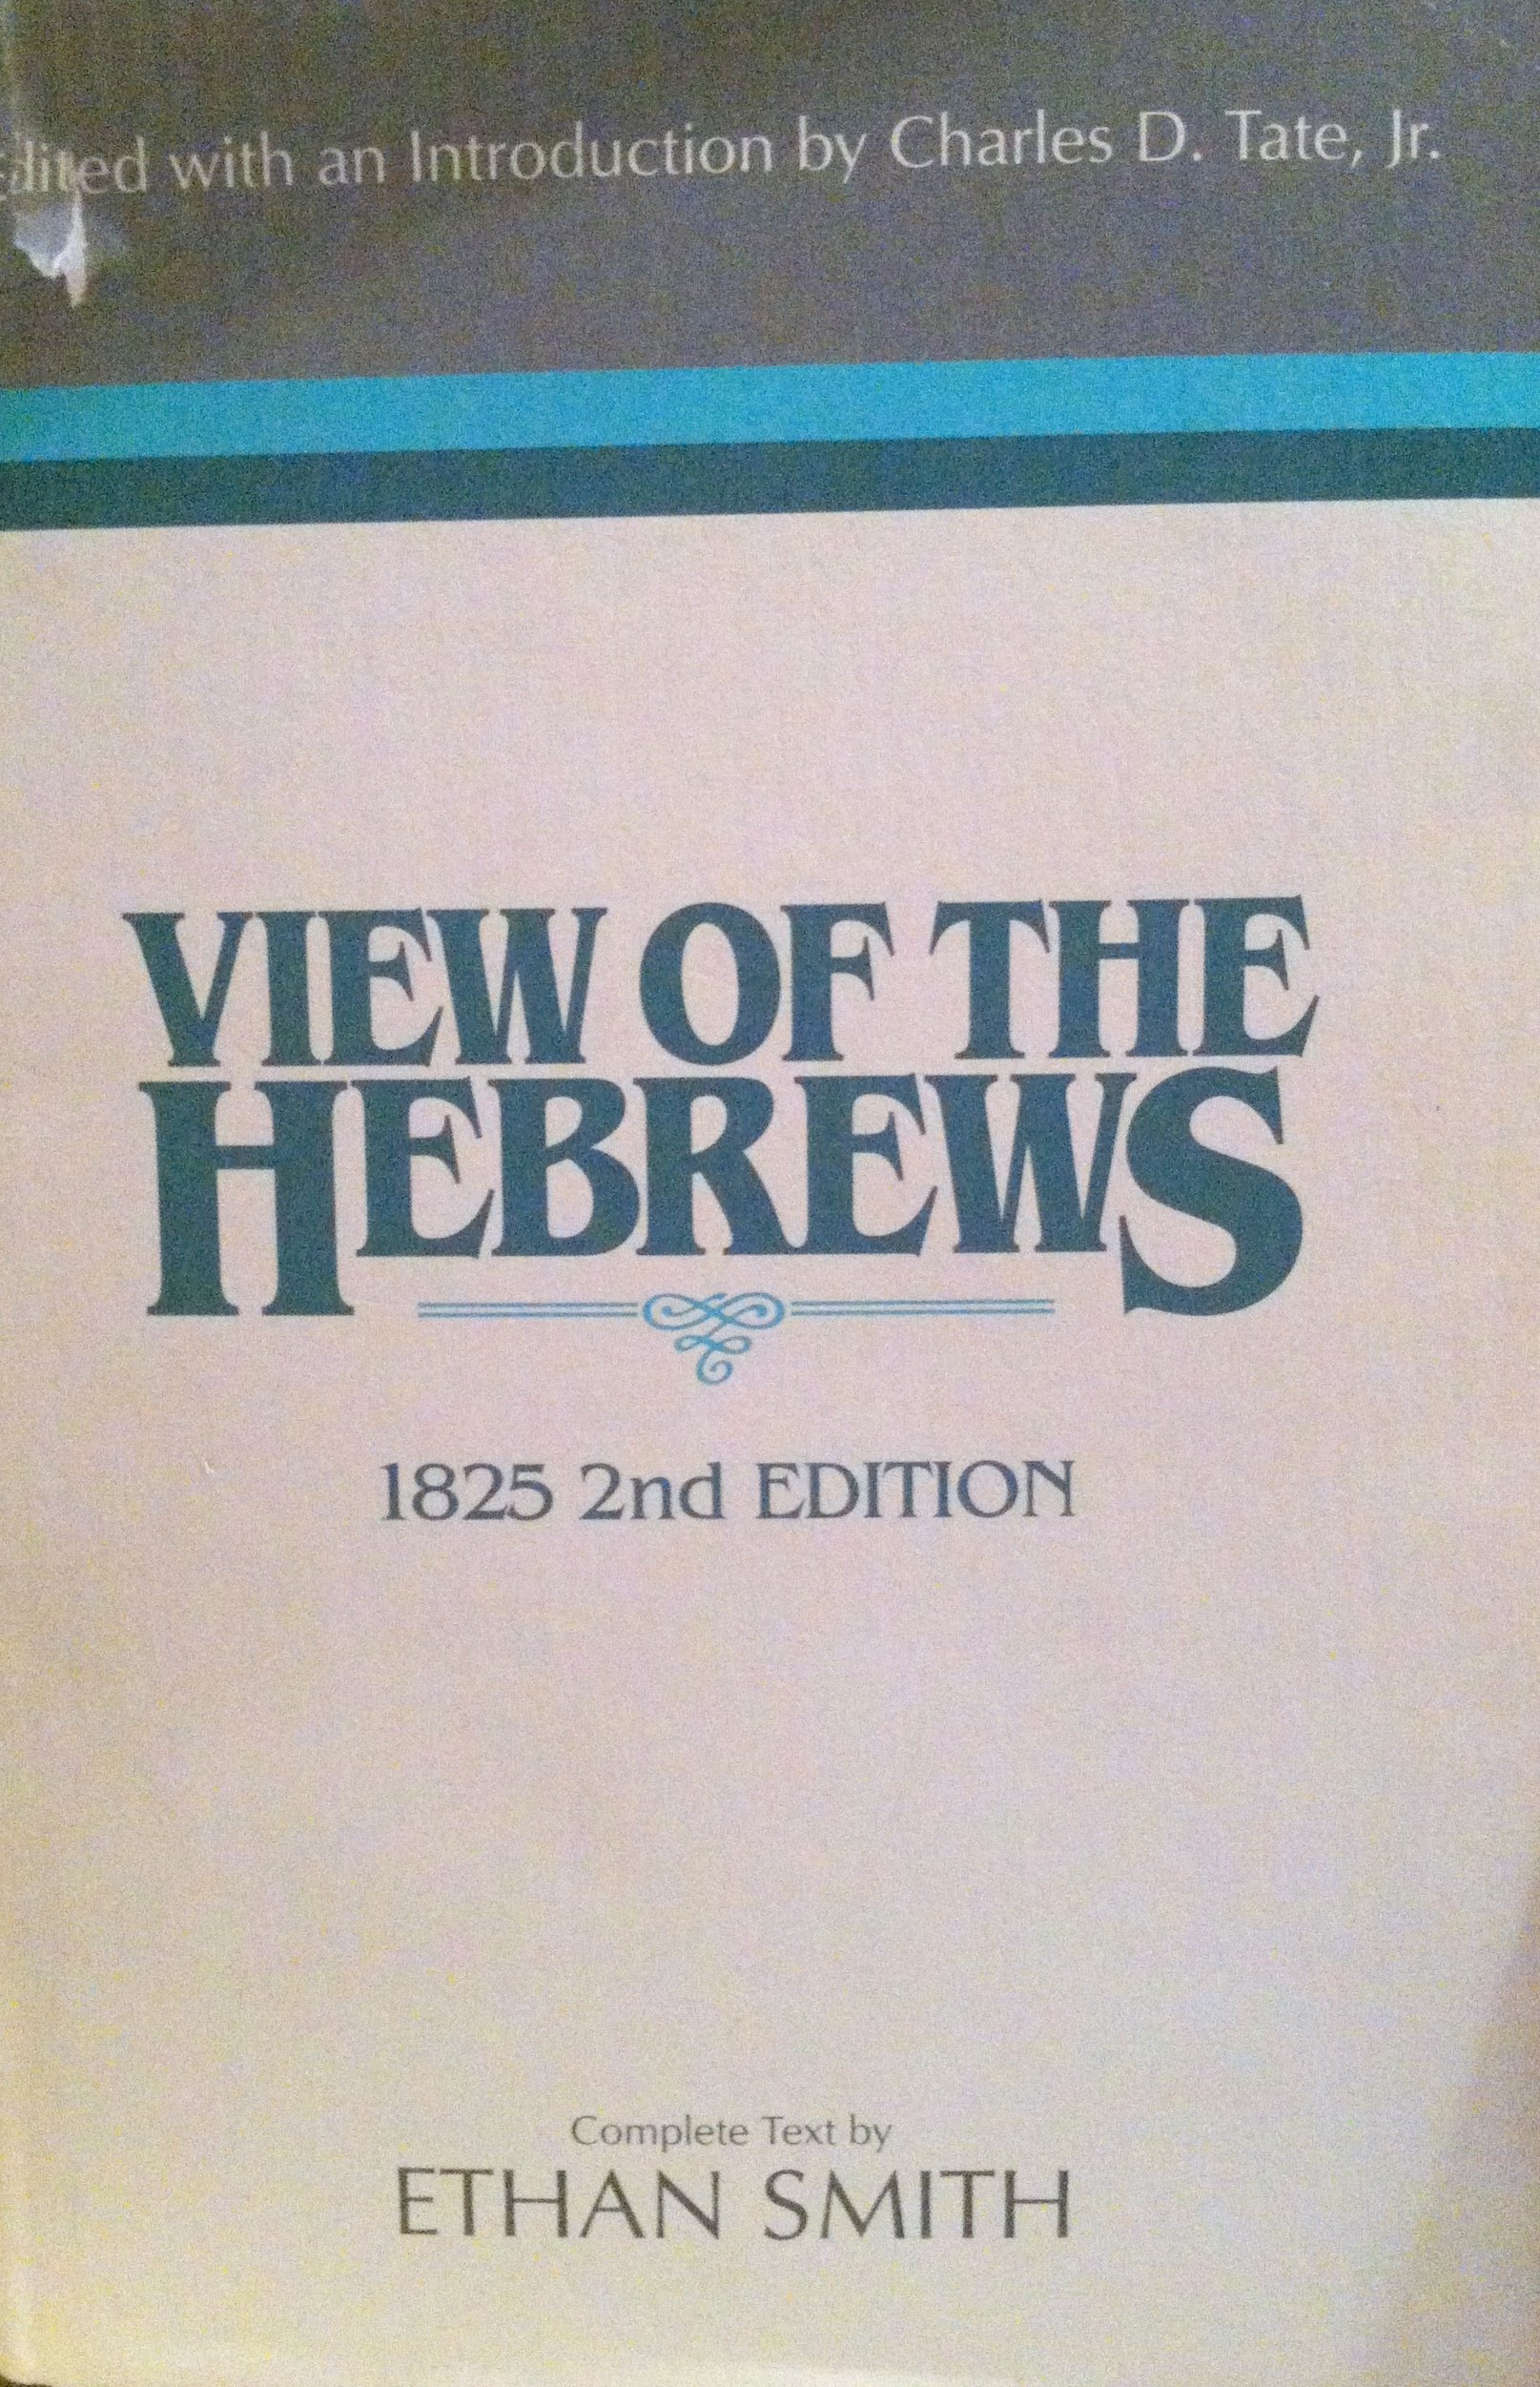 View of the Hebrews (Religious Studies Center Specialized Monograph Series), Smith, Ethan